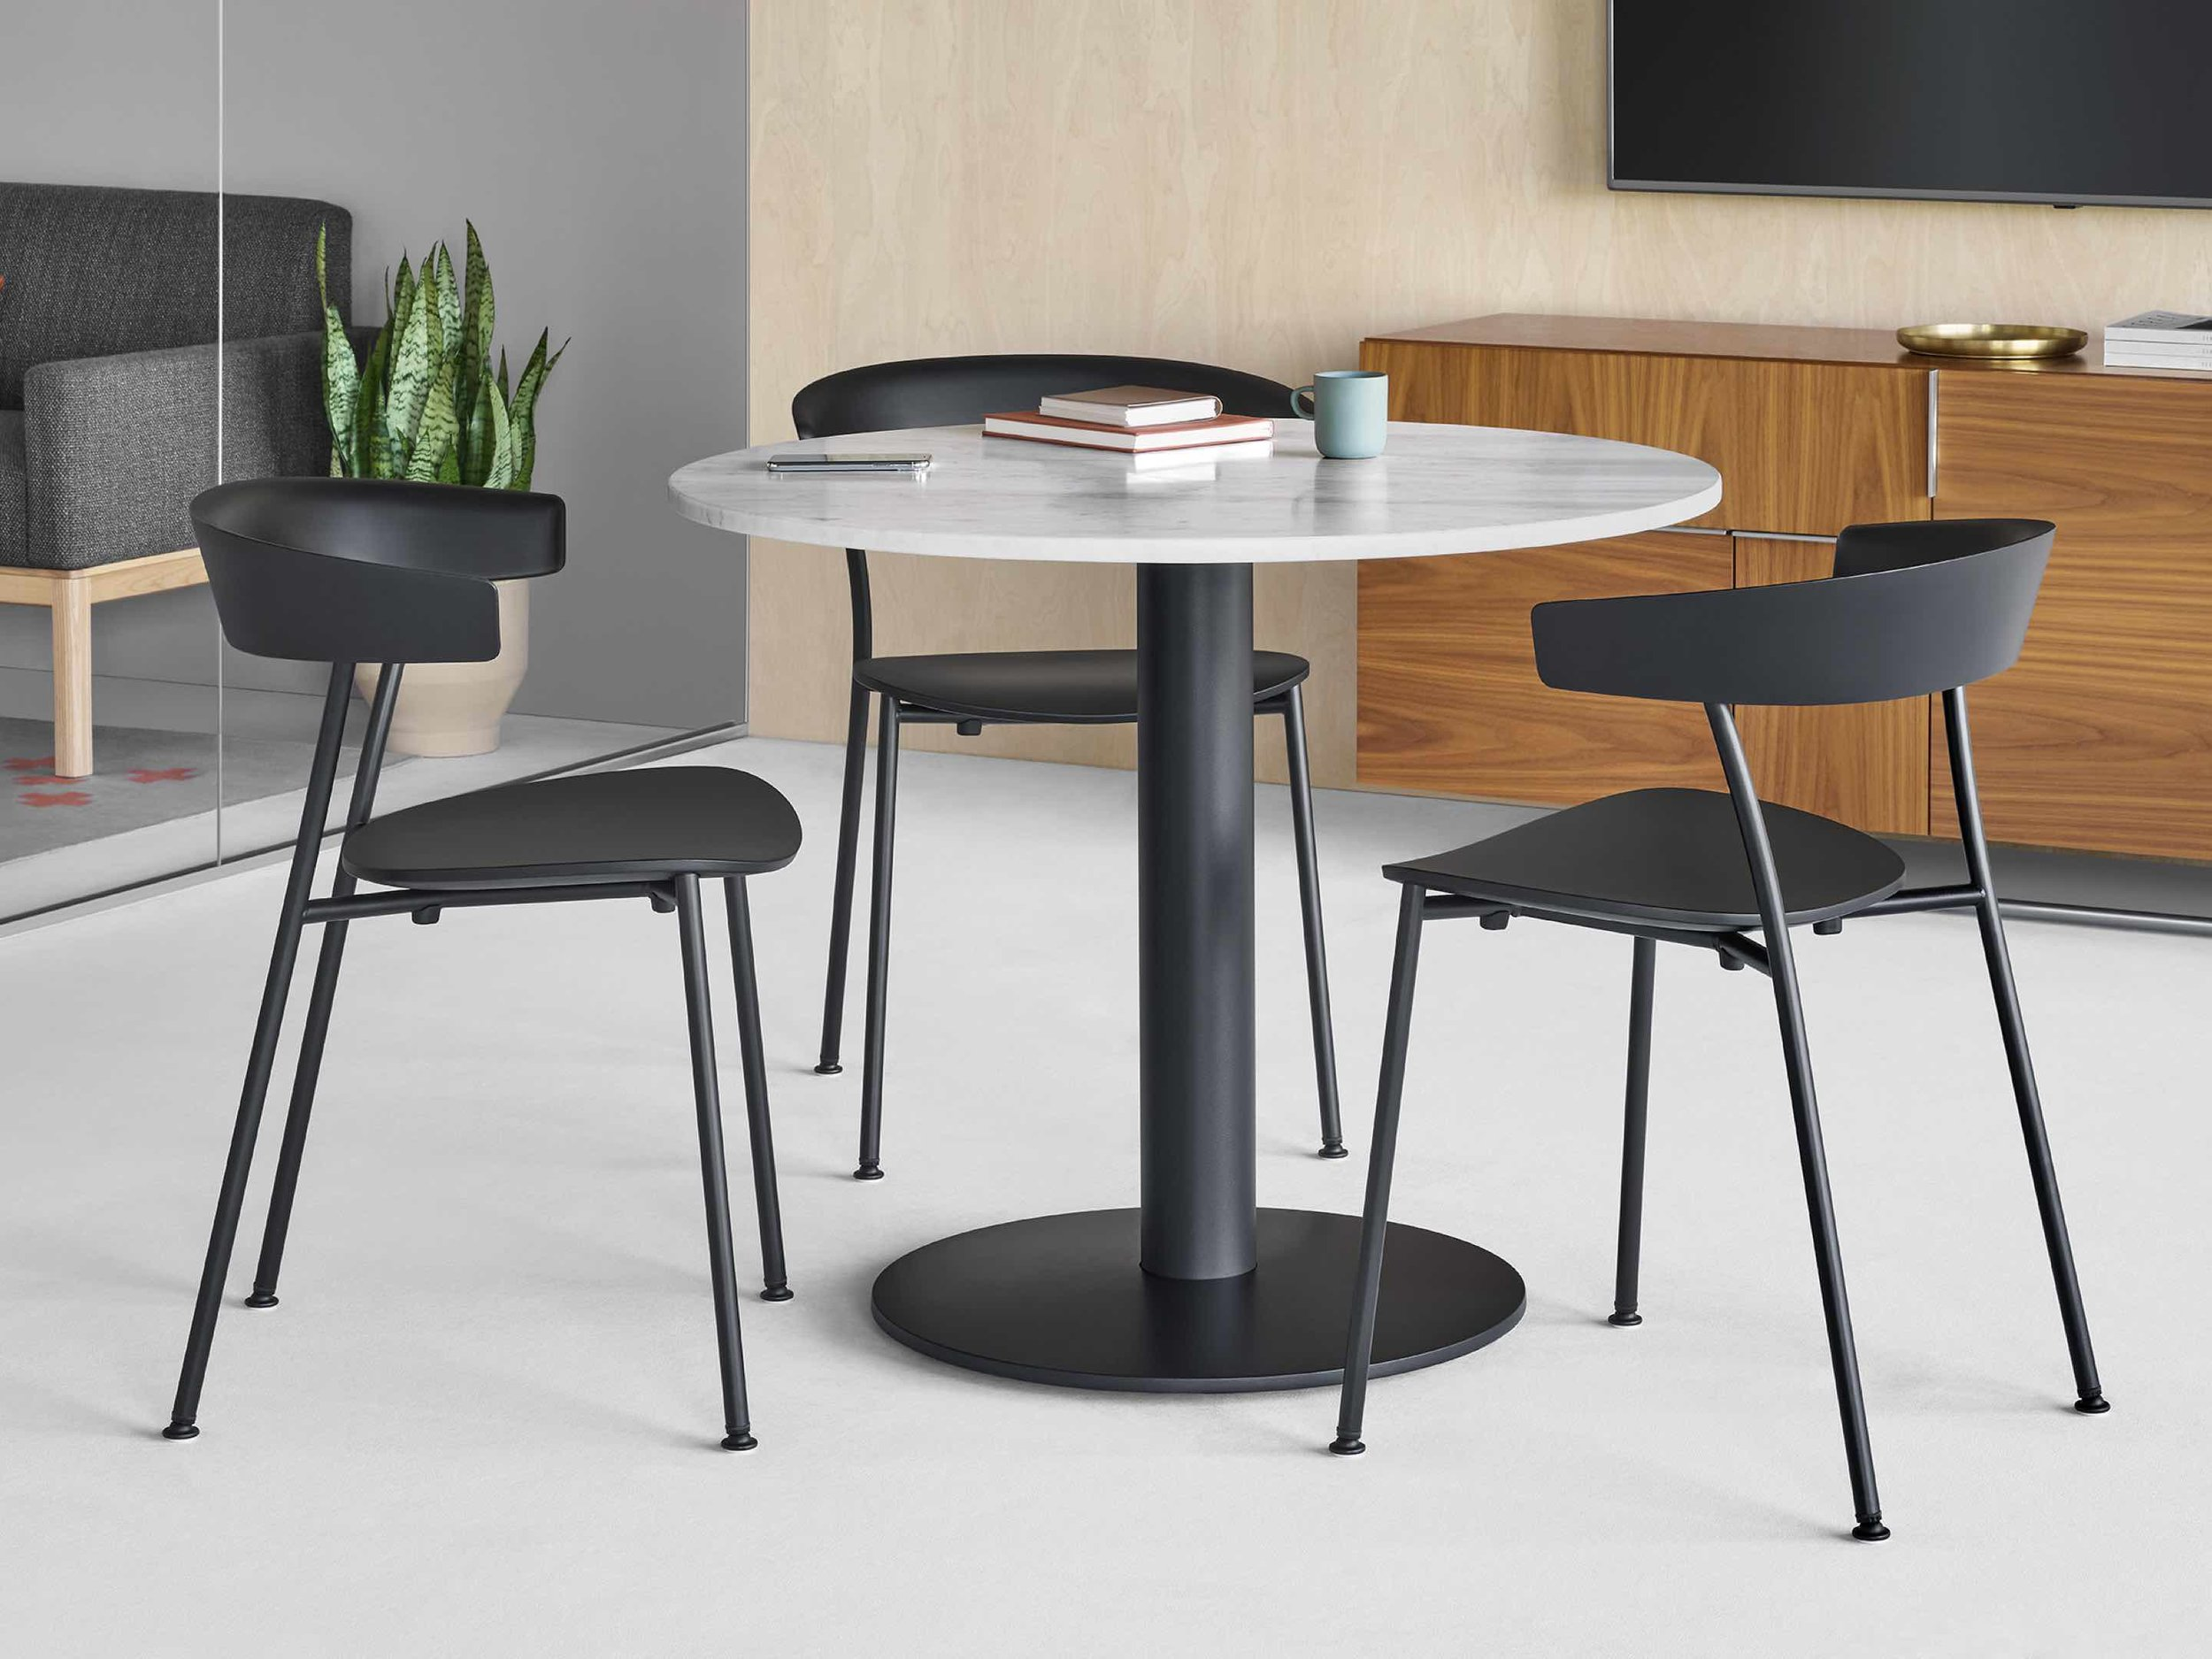 https://www.hermanmiller.com/products/tables/conference-tables/axon-tables/